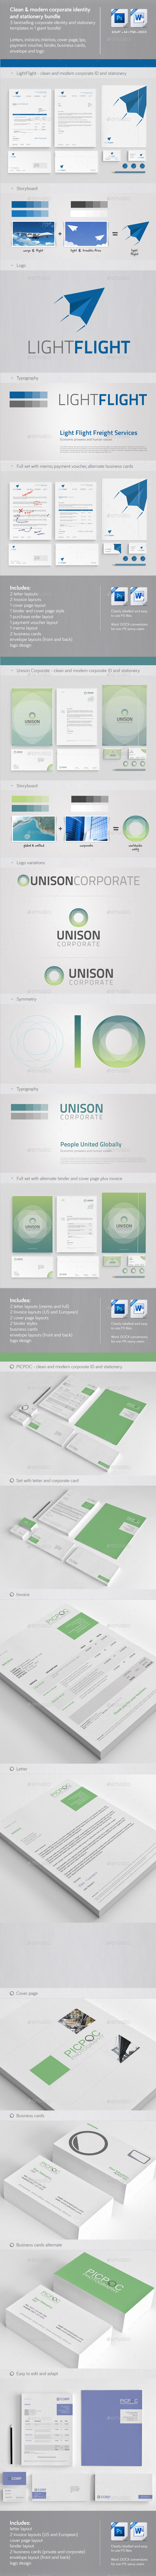 Clean & Modern Corporate ID & Stationary Bundle 1